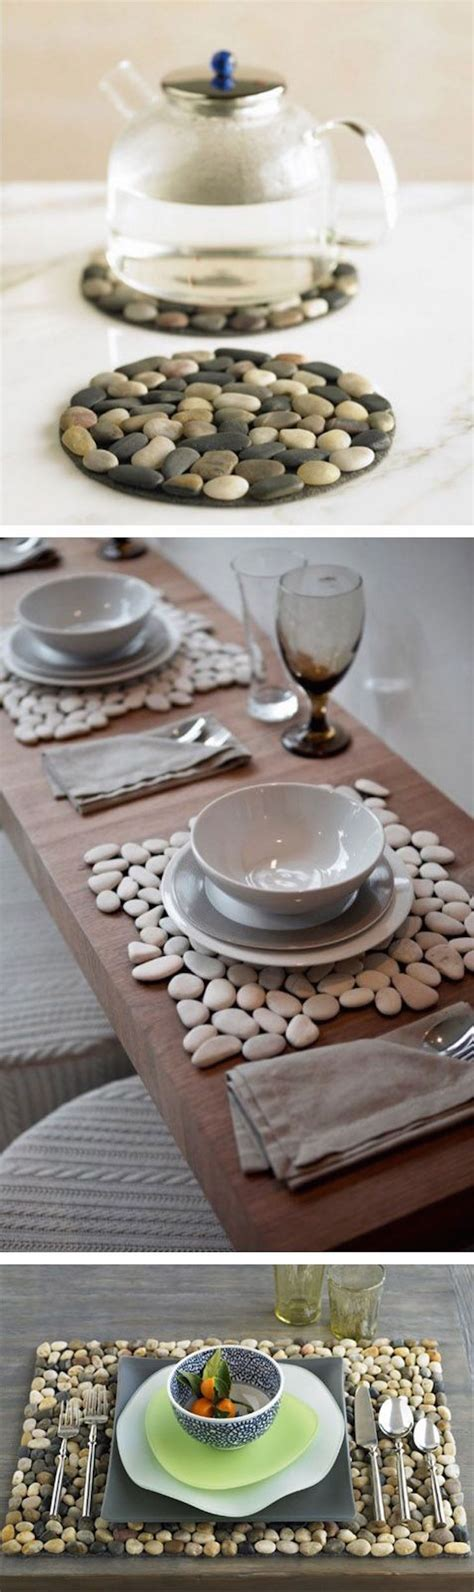 diy idea 10 pebbles diy ideas image 9 diy crafts ideas magazine